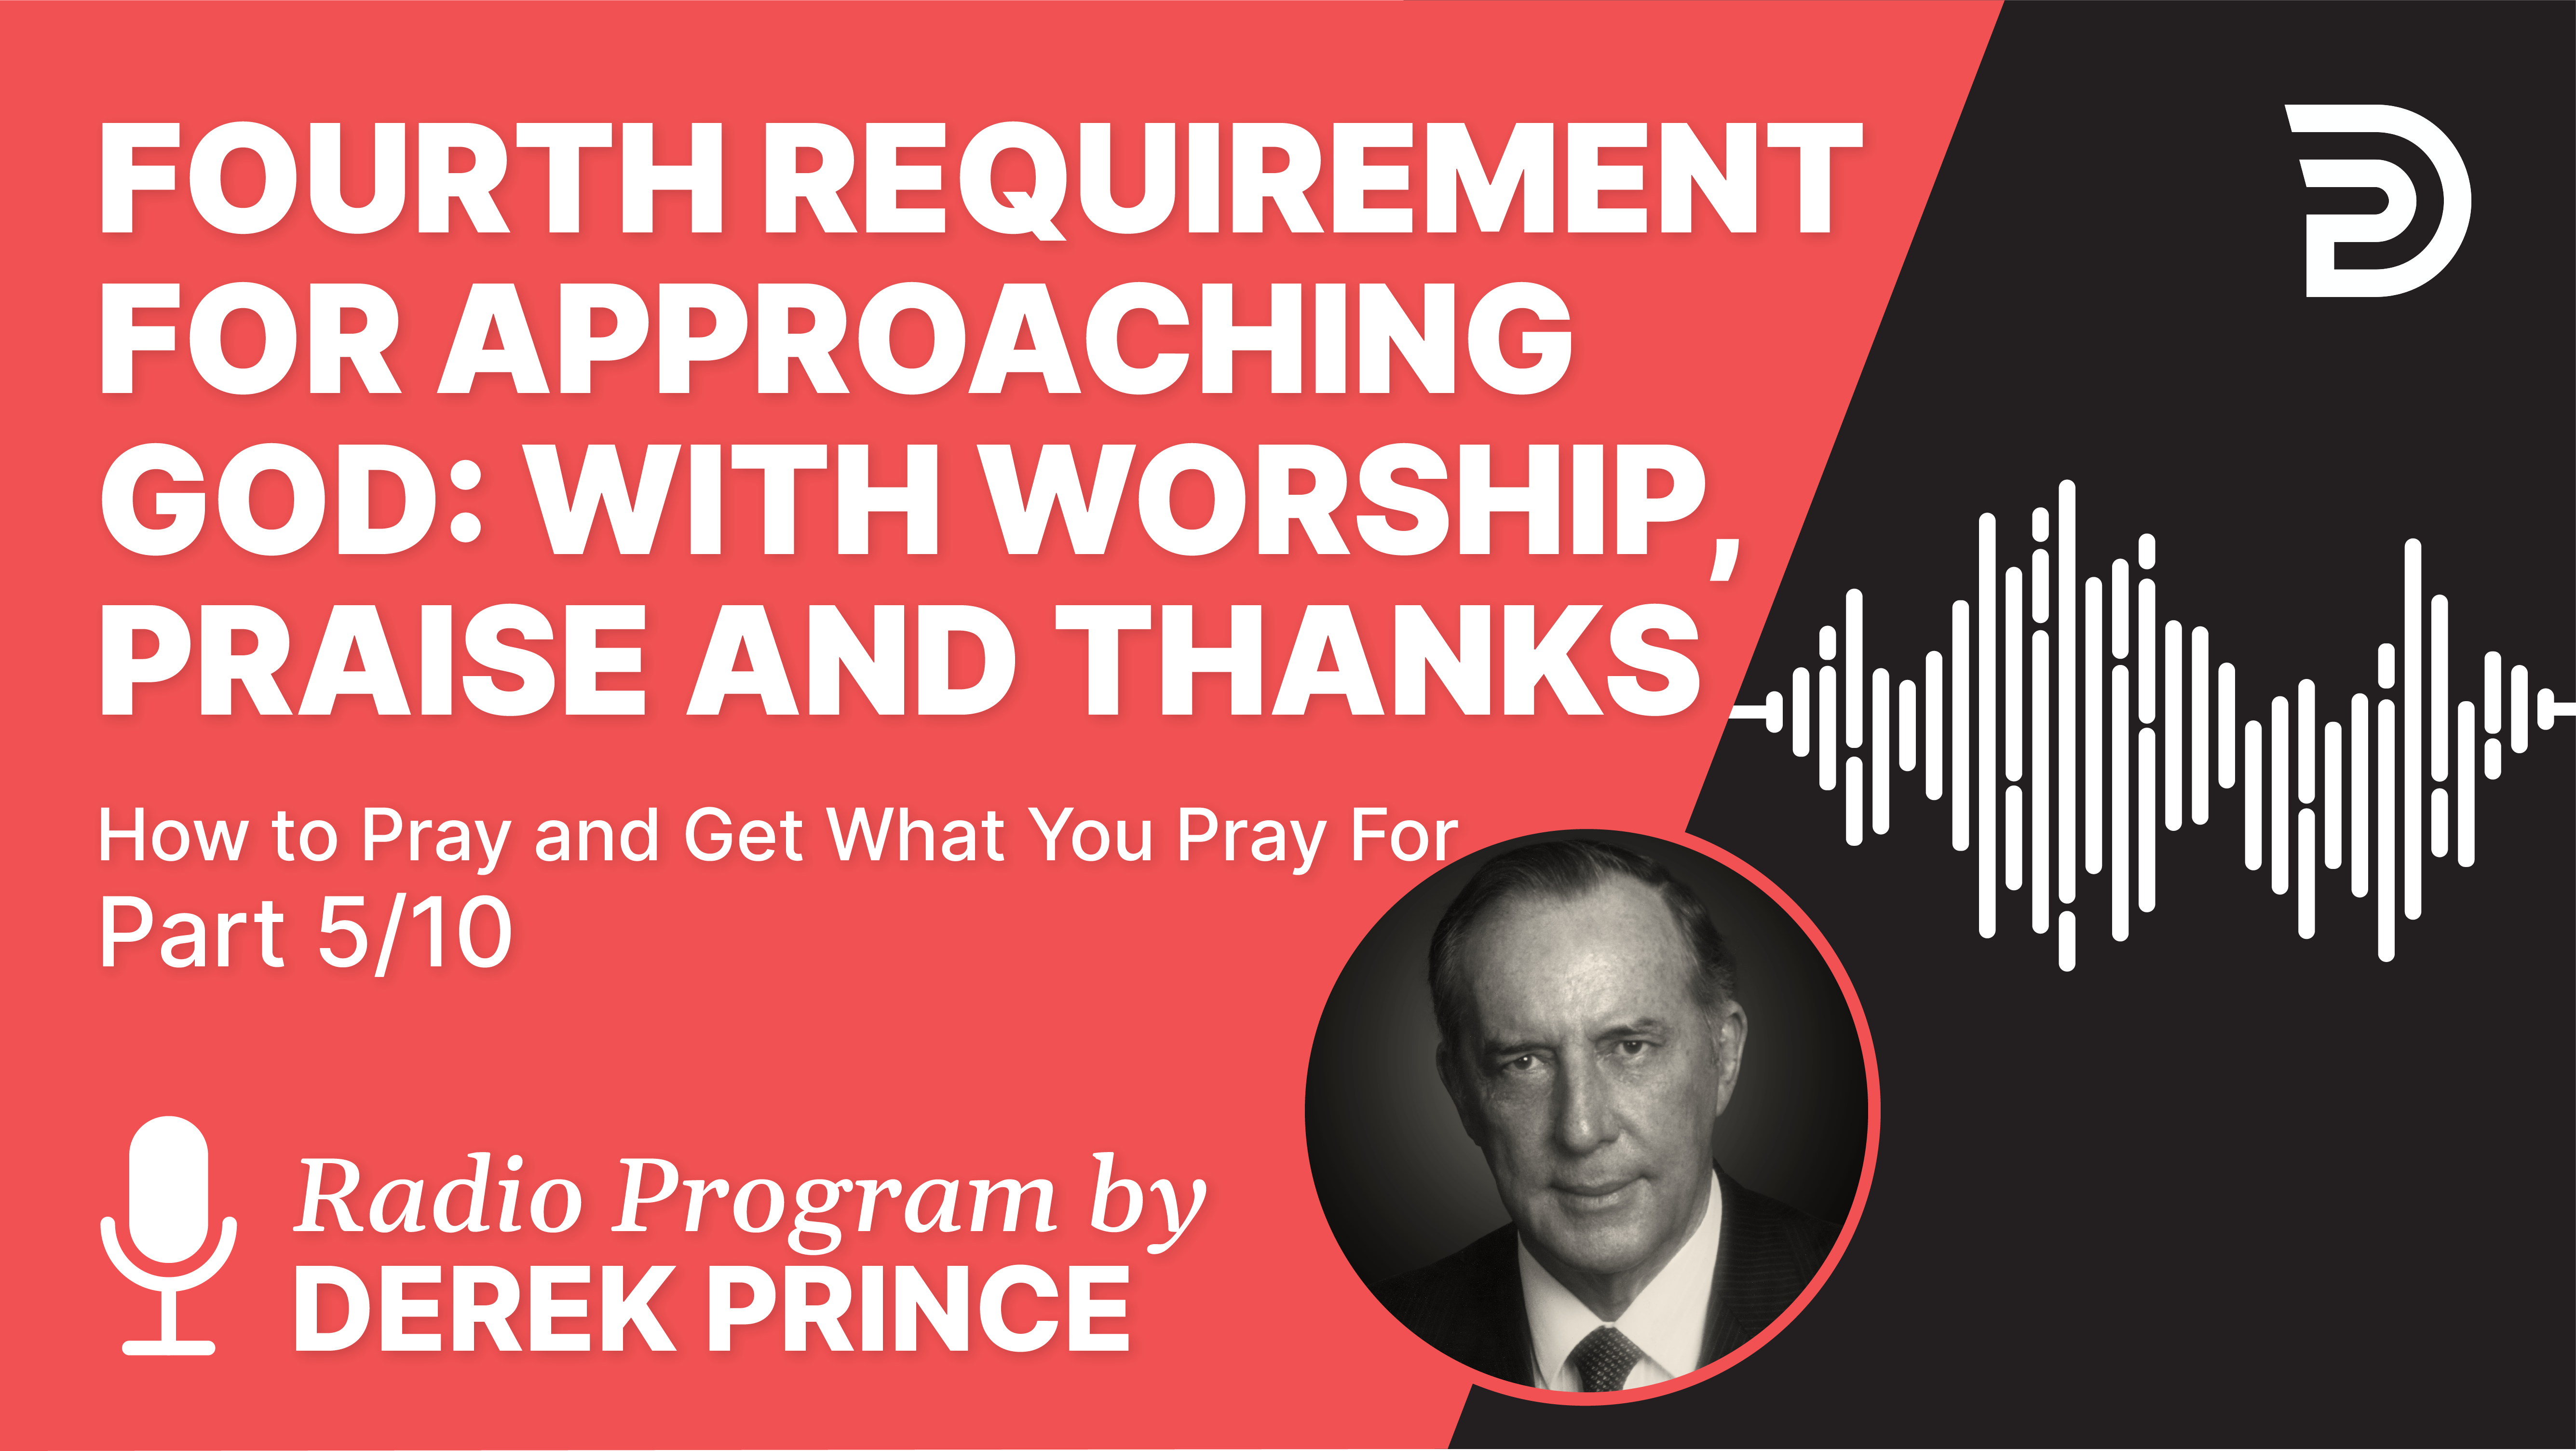 Fourth Requirement for Approaching God: With Worship, Praise and Thanks